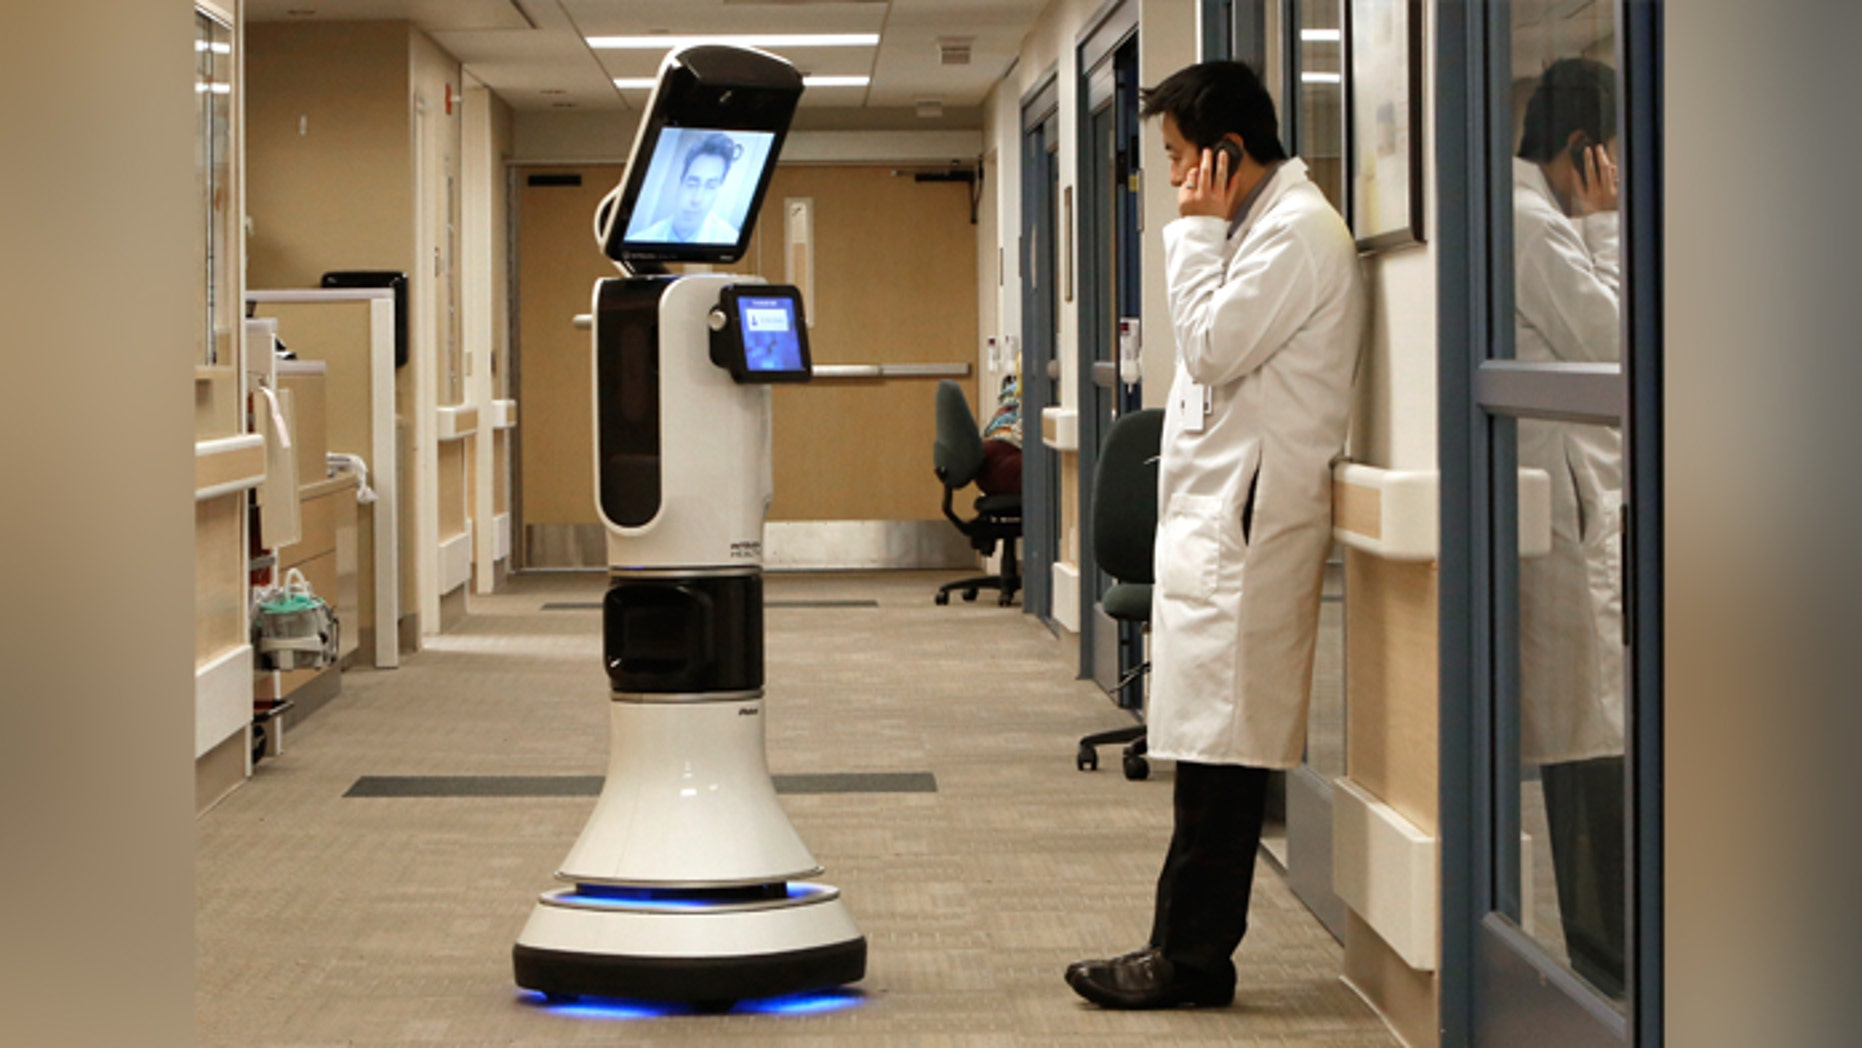 """Dr. Alan Shatzel, medical director of the Mercy Telehealth Network, is displayed on the monitor RP-VITA robot as he waits to confer with Dr. Alex Nee at Mercy San Juan Hospital in Carmichael, Calif. The robots enable physicians to have """"beam"""" themselves into hospitals to diagnose patients and offer medical advice during emergencies."""